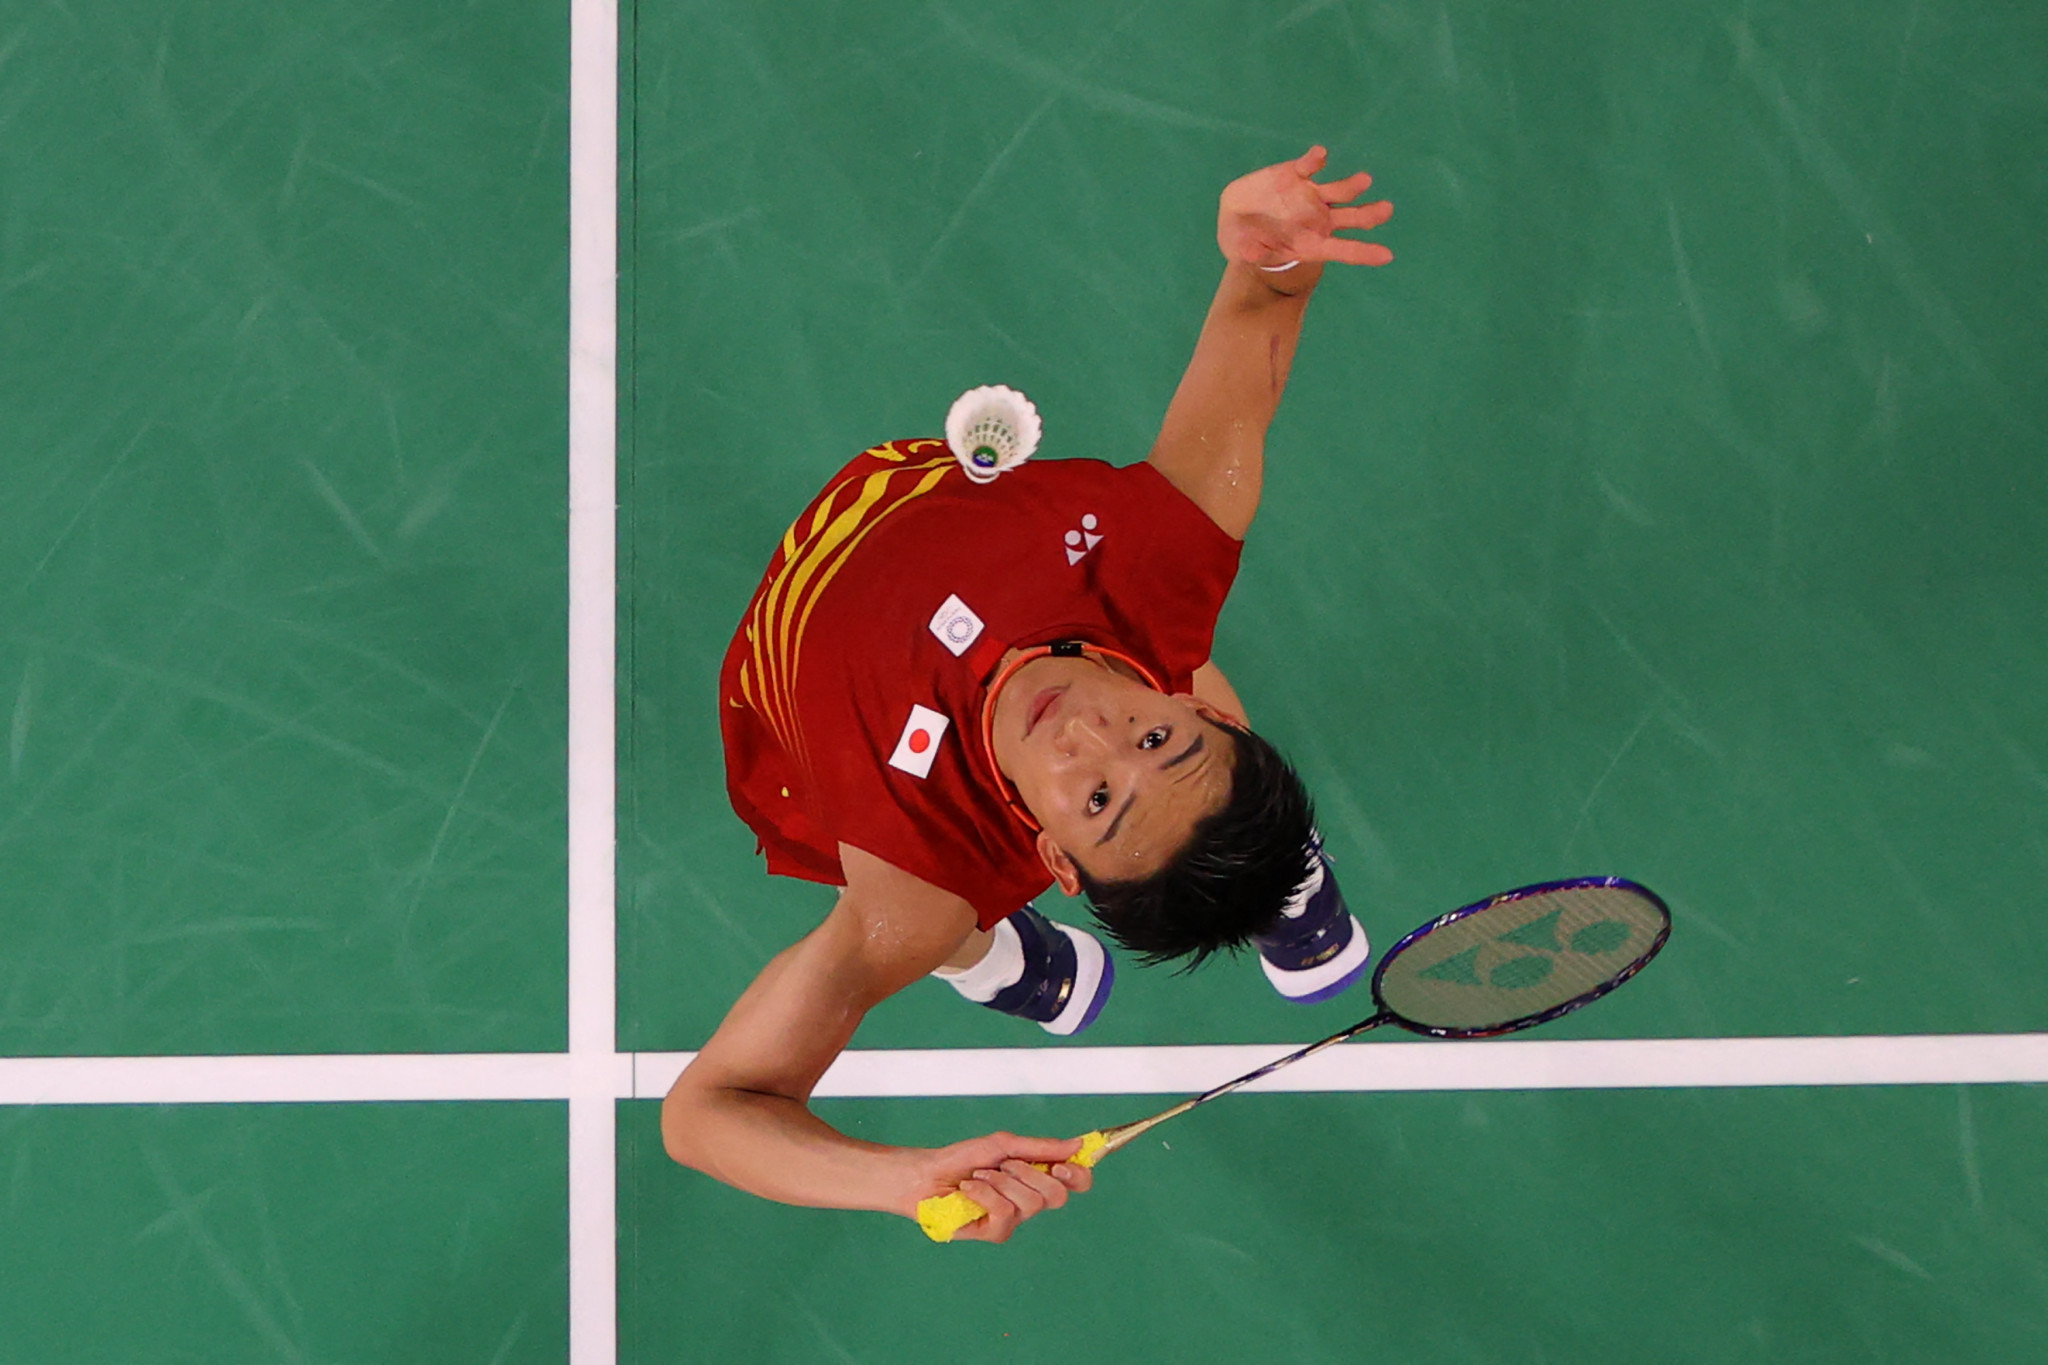 But there was disappointment for Japan's Kento Momota, with the world champion eliminated from the men's singles by South Korea's Heo Kwang-hee  ©Getty Images